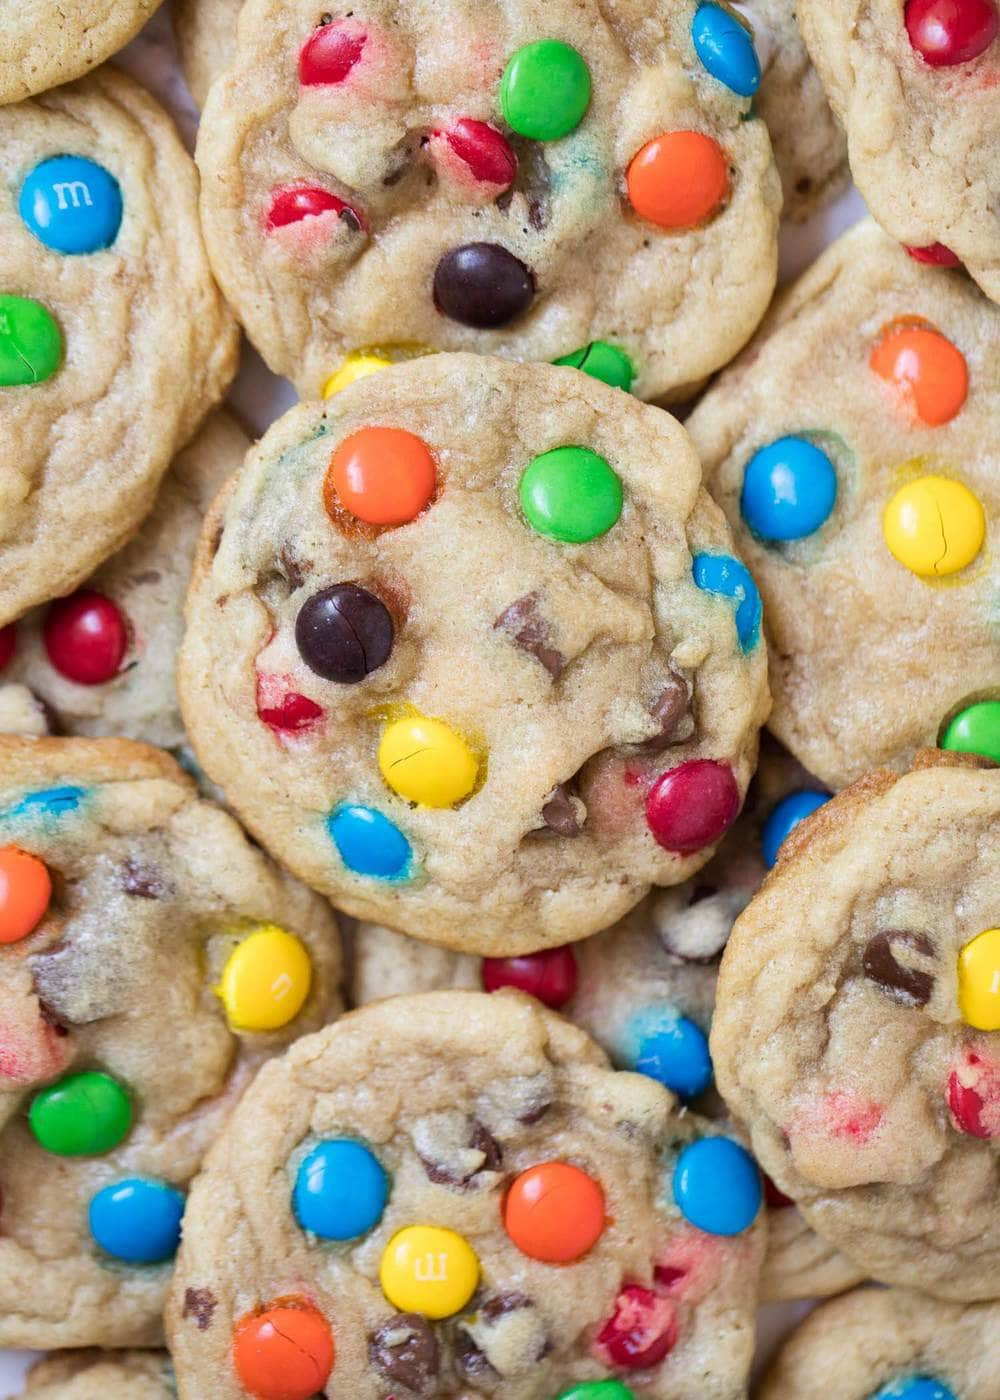 dd3989159 BEST M&M Cookies Recipe (+ Video) - I Heart Naptime